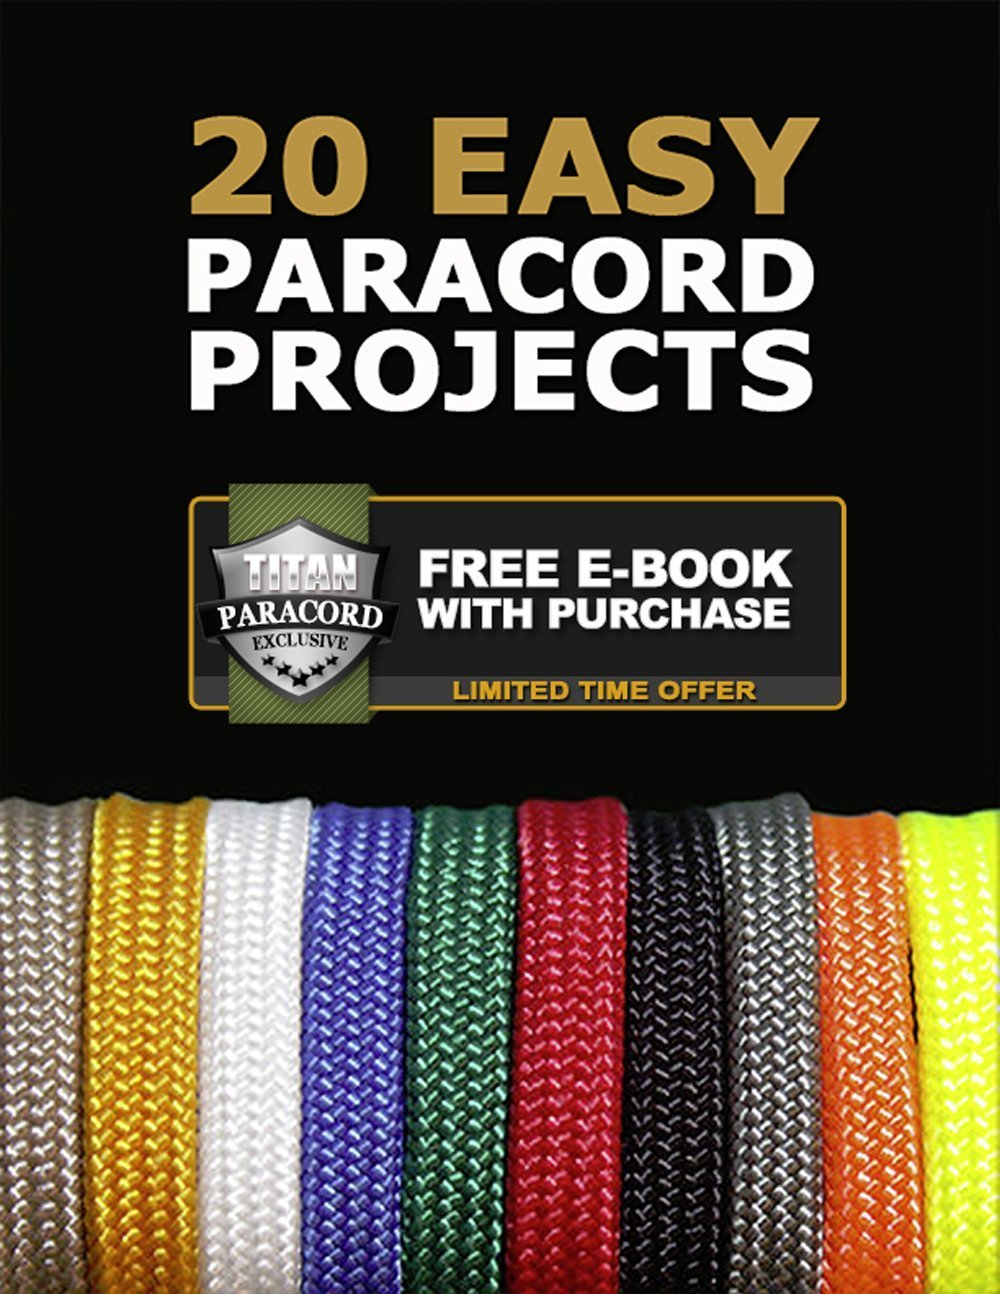 Titan SurvivorCord | Olive-DRAB | 103 Feet | Patented Military Type III 550 Paracord/Parachute Cord (3/16'' Diameter) with Integrated Fishing Line, Fire-Starter, and Utility Wire. by Titan Paracord (Image #9)